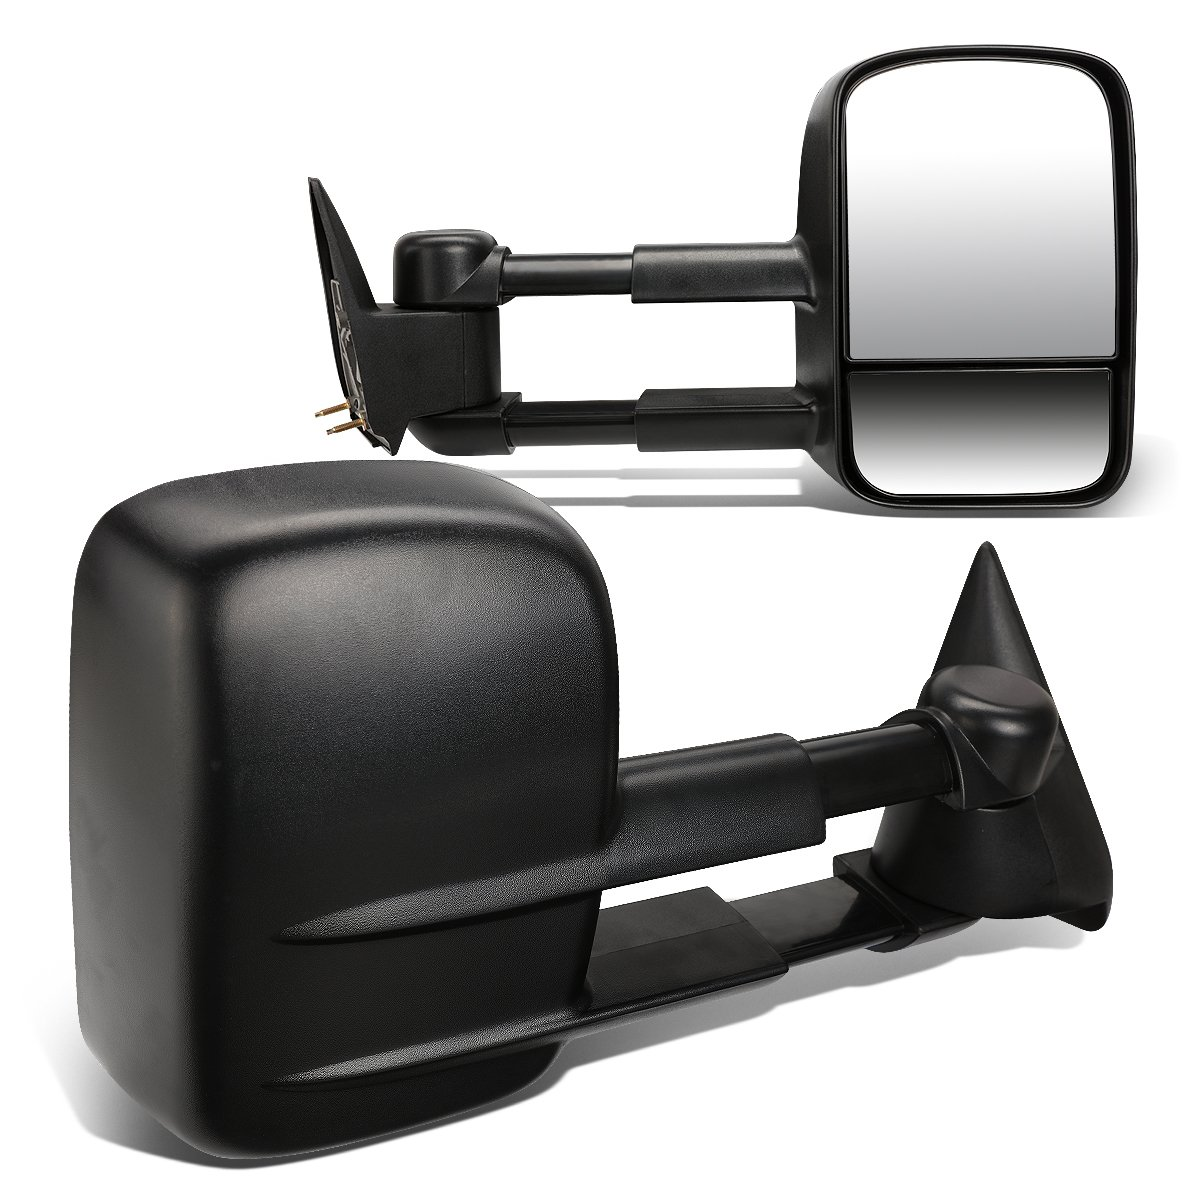 For Chevy GMC C/K GMT400 Pair of Black Textured Telescoping Manual Extenable Side Towing Mirrors